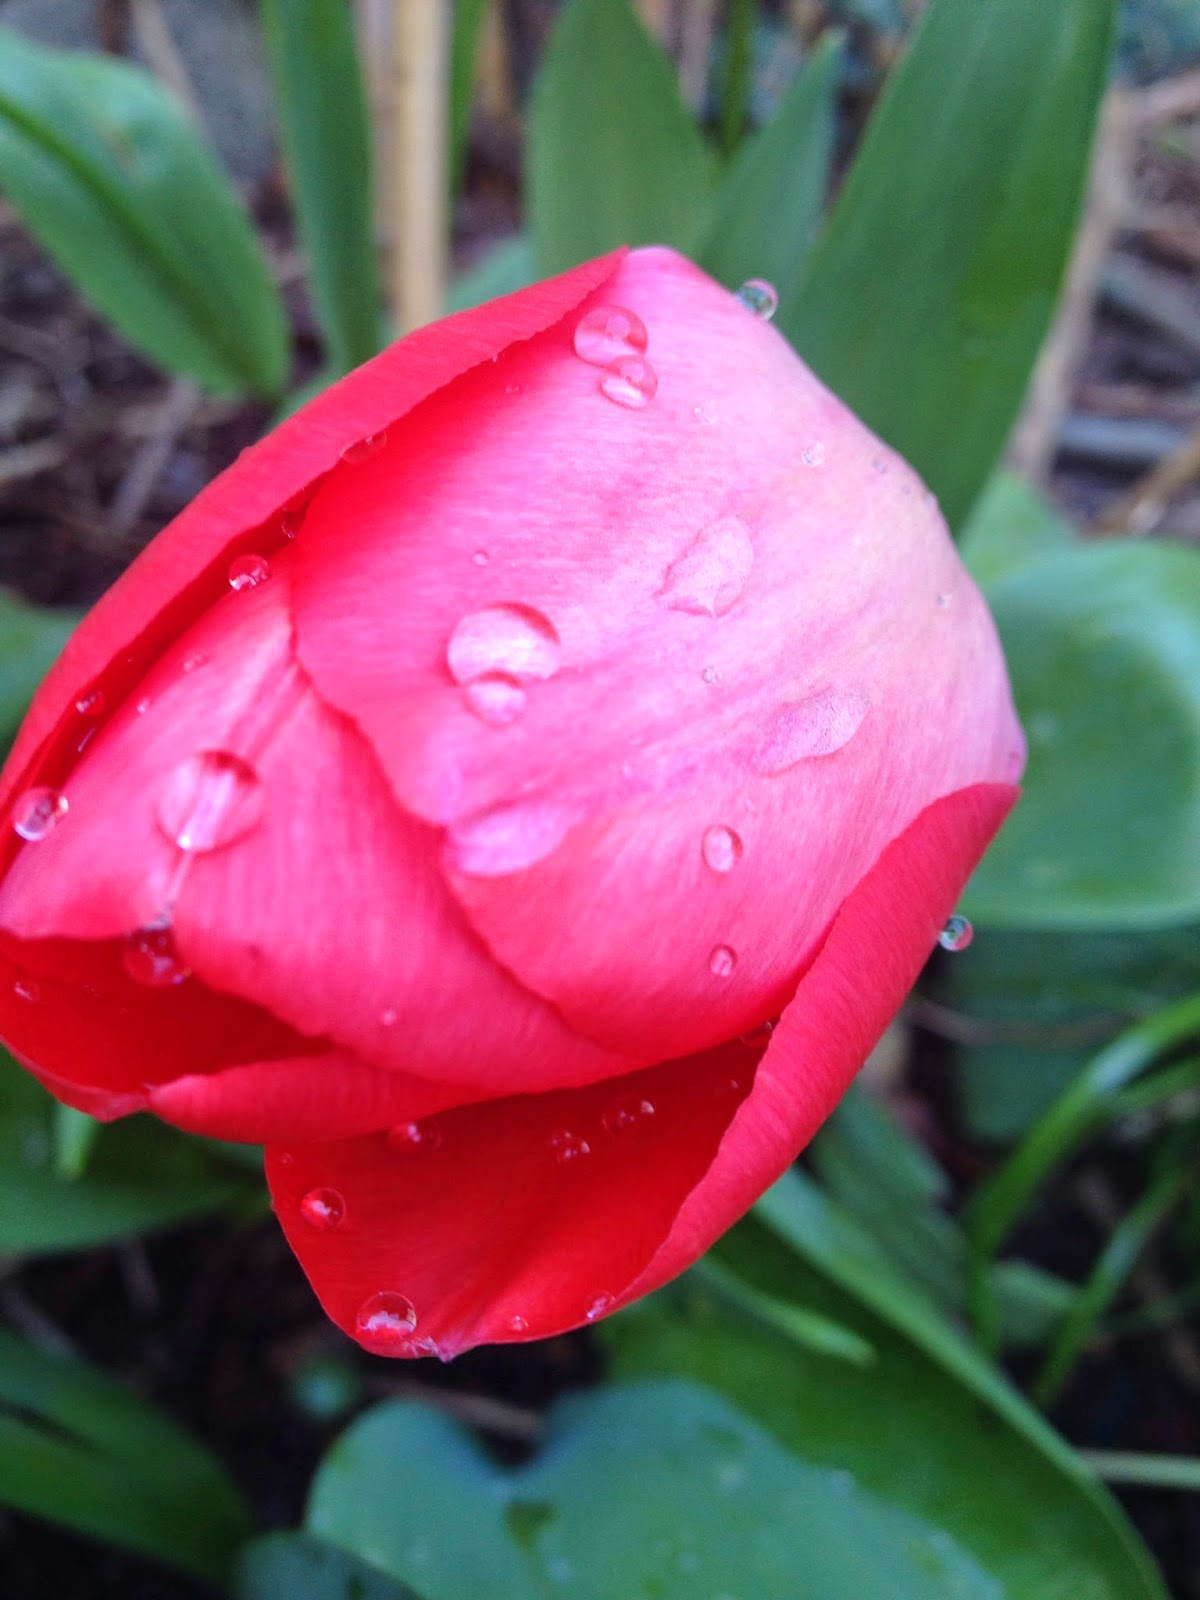 Tulip closed with raindrops